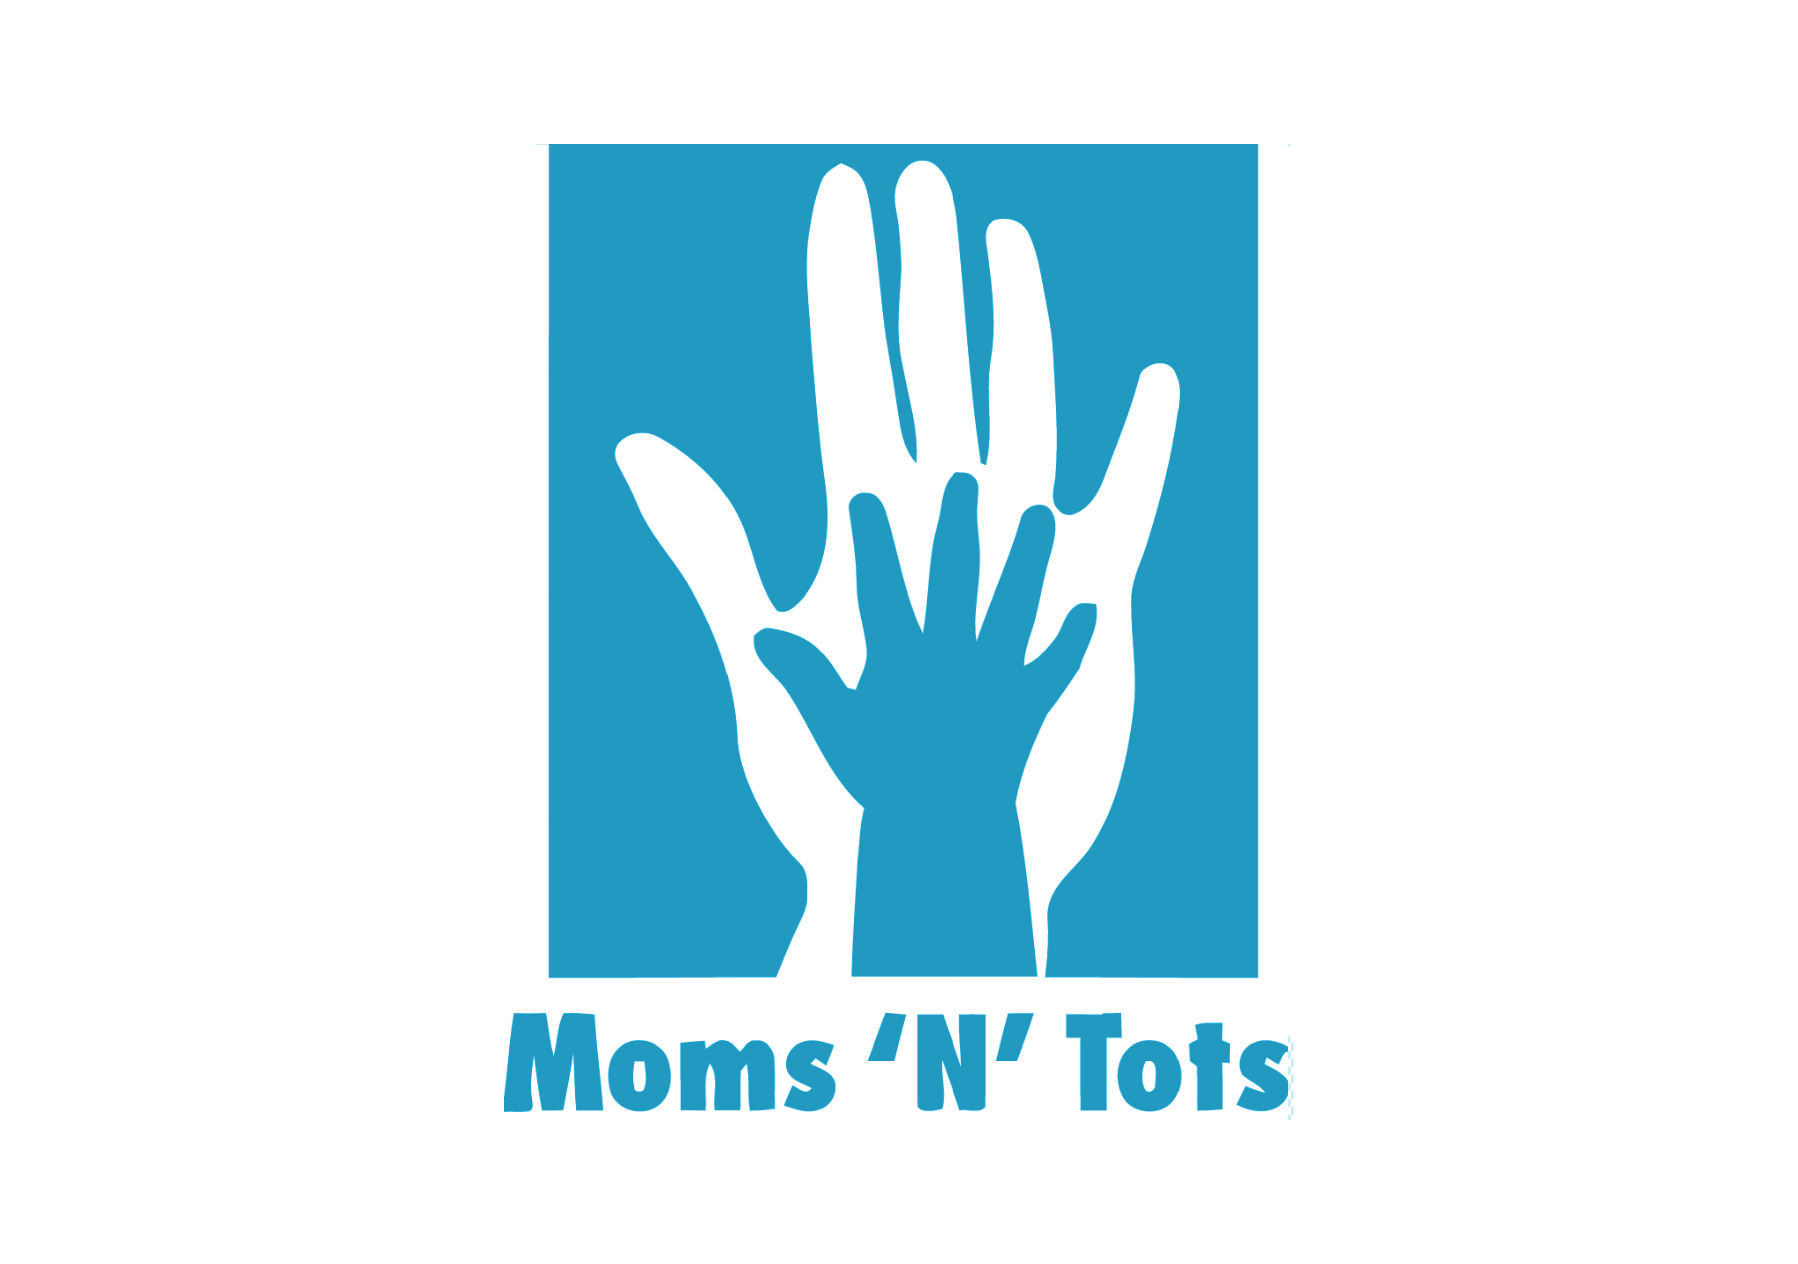 Moms and tots new